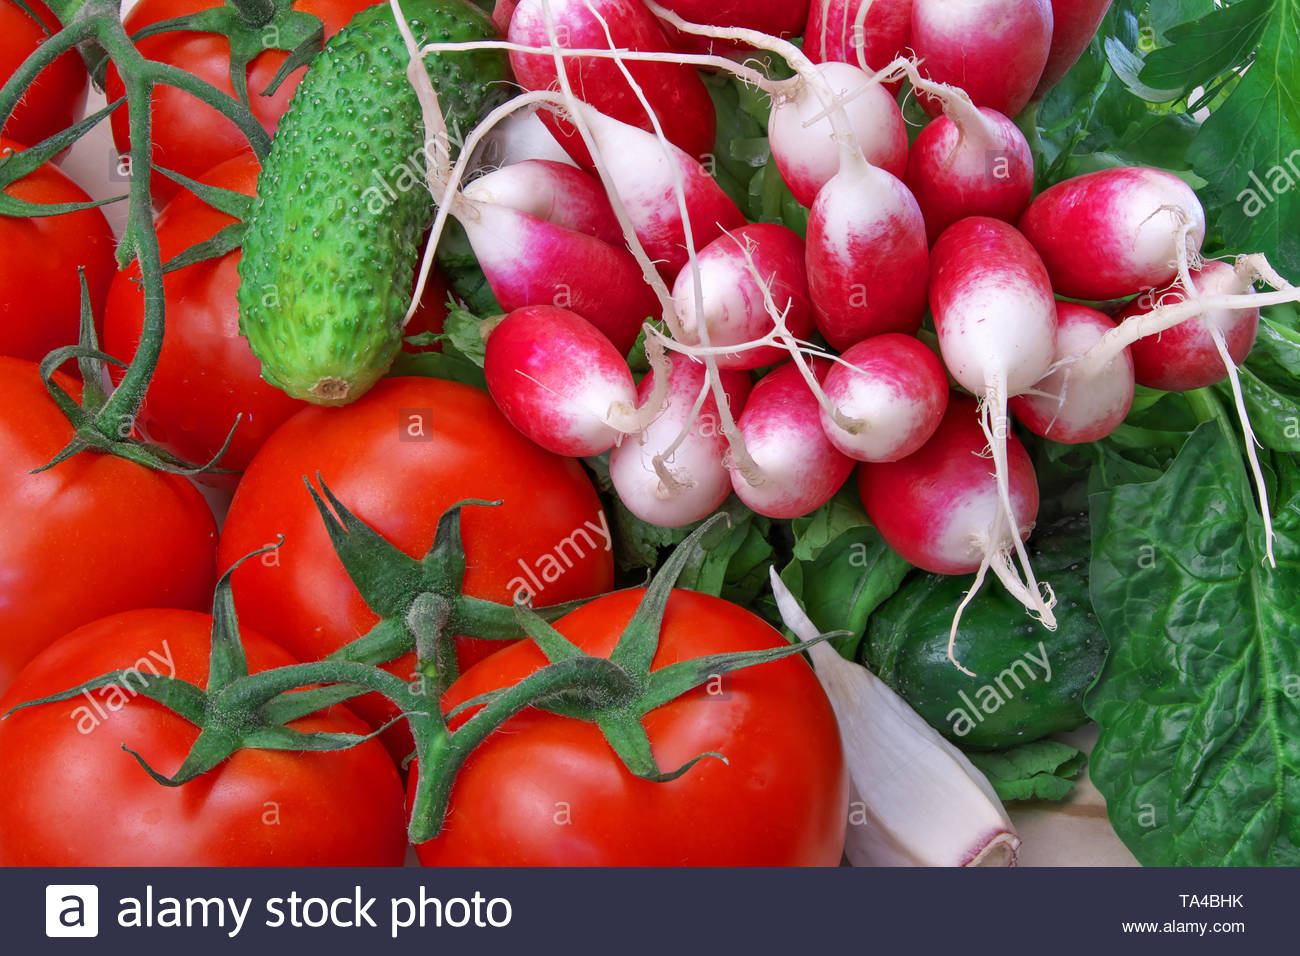 Still-life with red ripe tomatoes and other vegetables with greens close-up - Stock Image